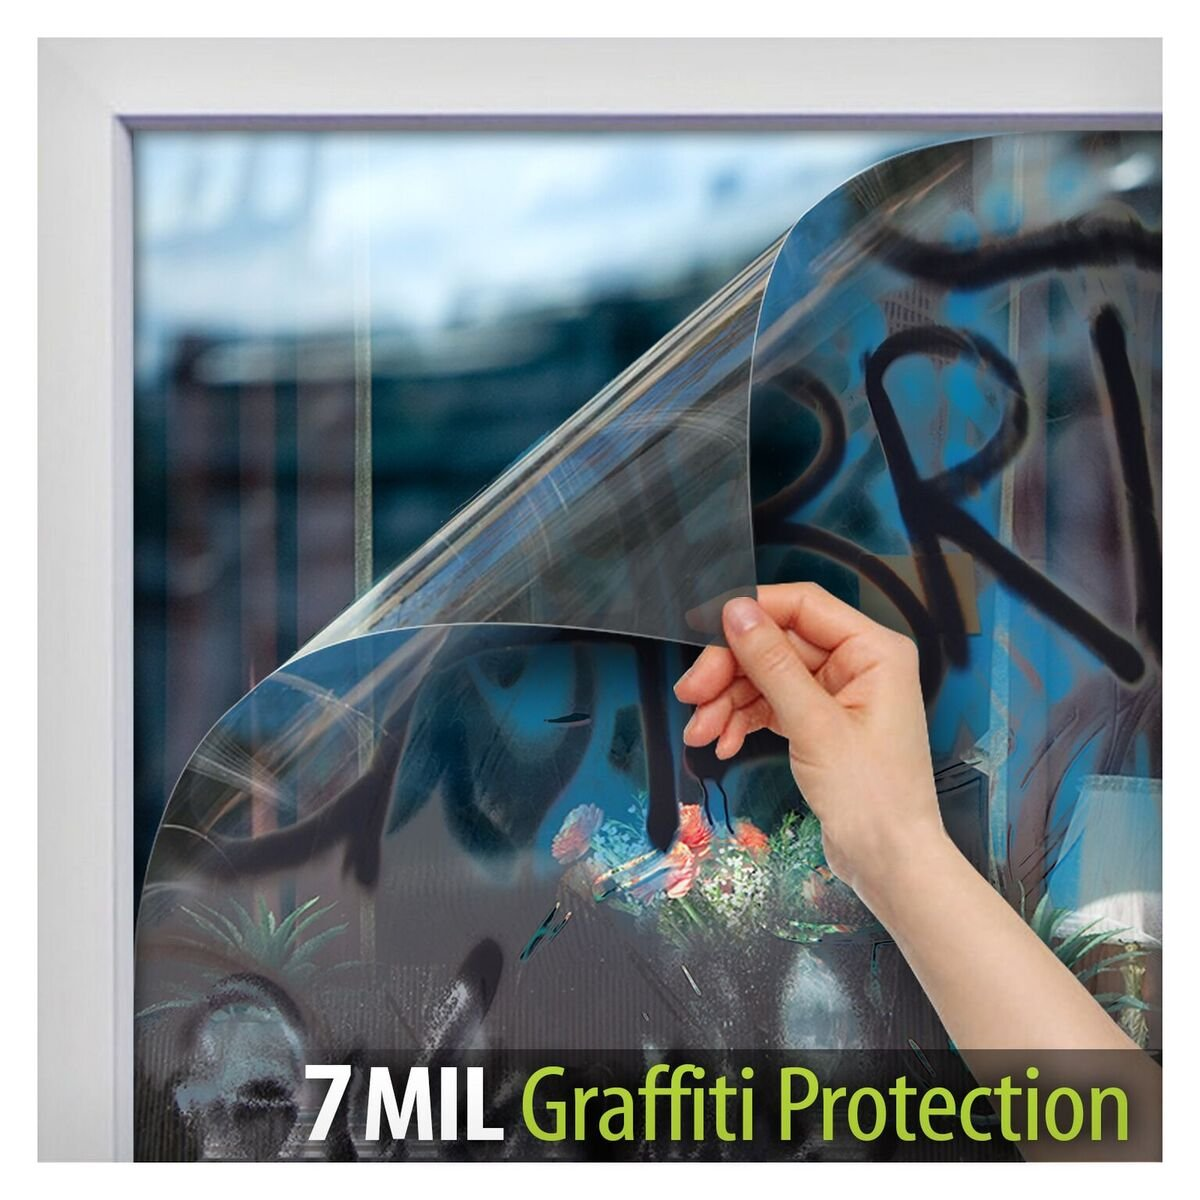 BDF AG7M Window Film Graffiti Protection 7 Mil Clear (36in X 50ft) Buydecorativefilm